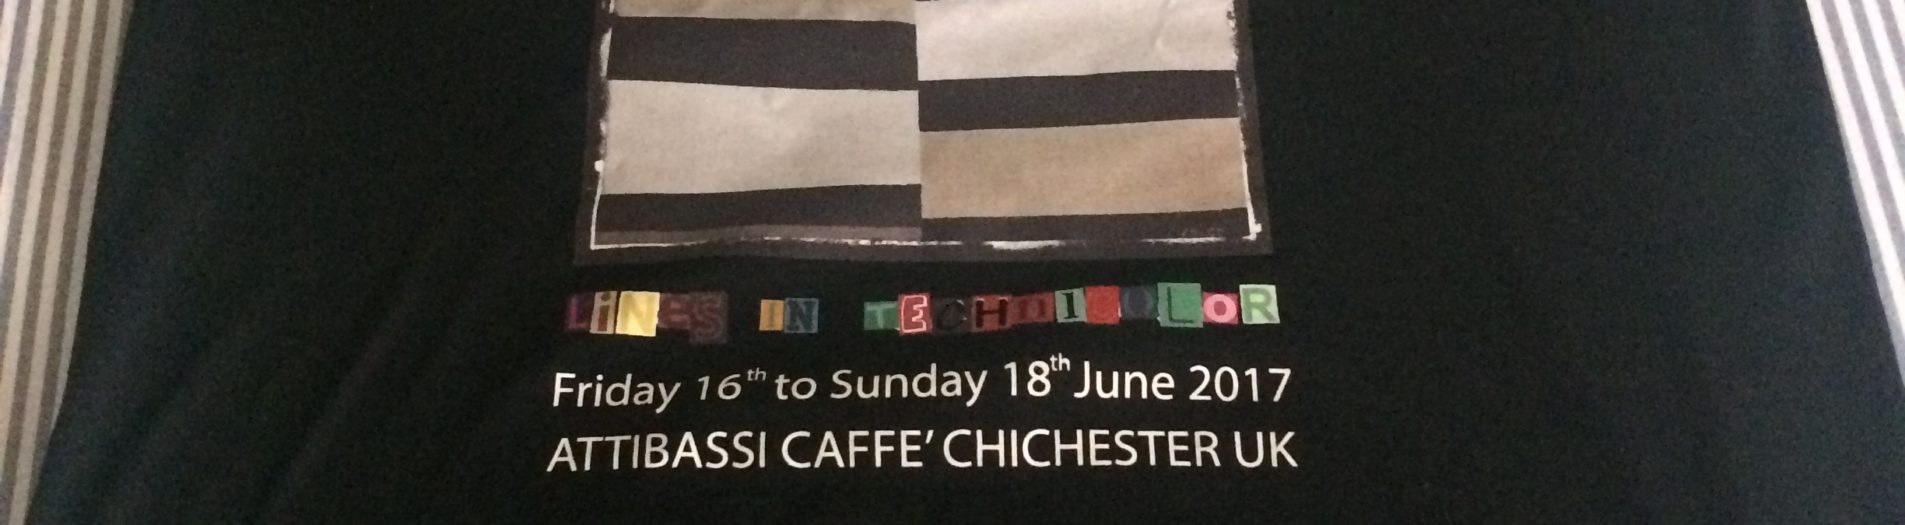 LINES IN TECHNICOLOR Attibassi Caffè Chichester UK Friday 16 th to Sunday 18 th June 2017